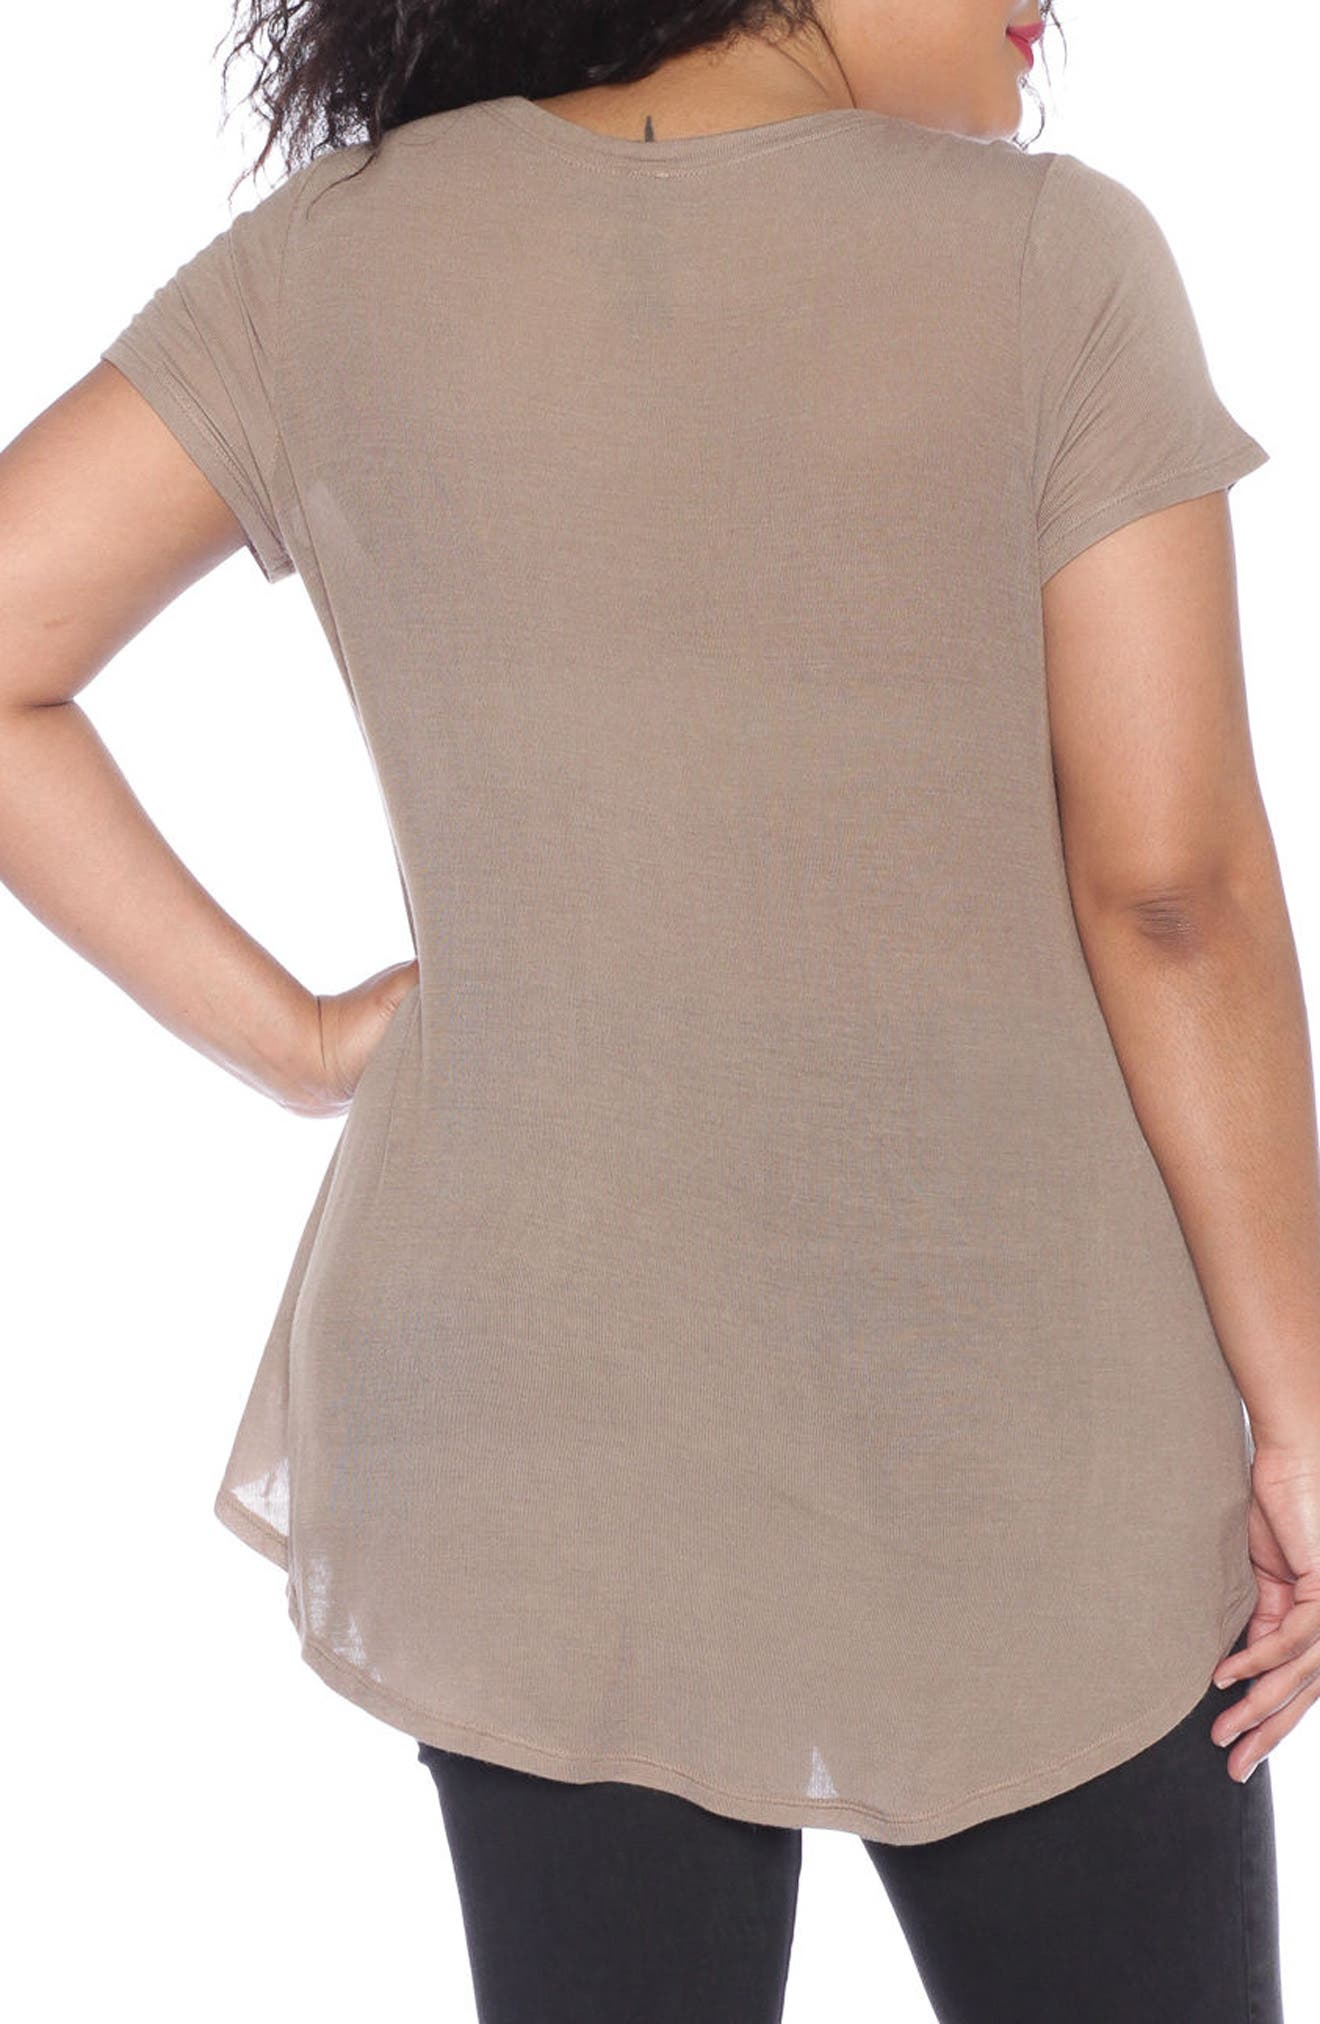 High/Low Scoop Neck Tee,                             Alternate thumbnail 3, color,                             210